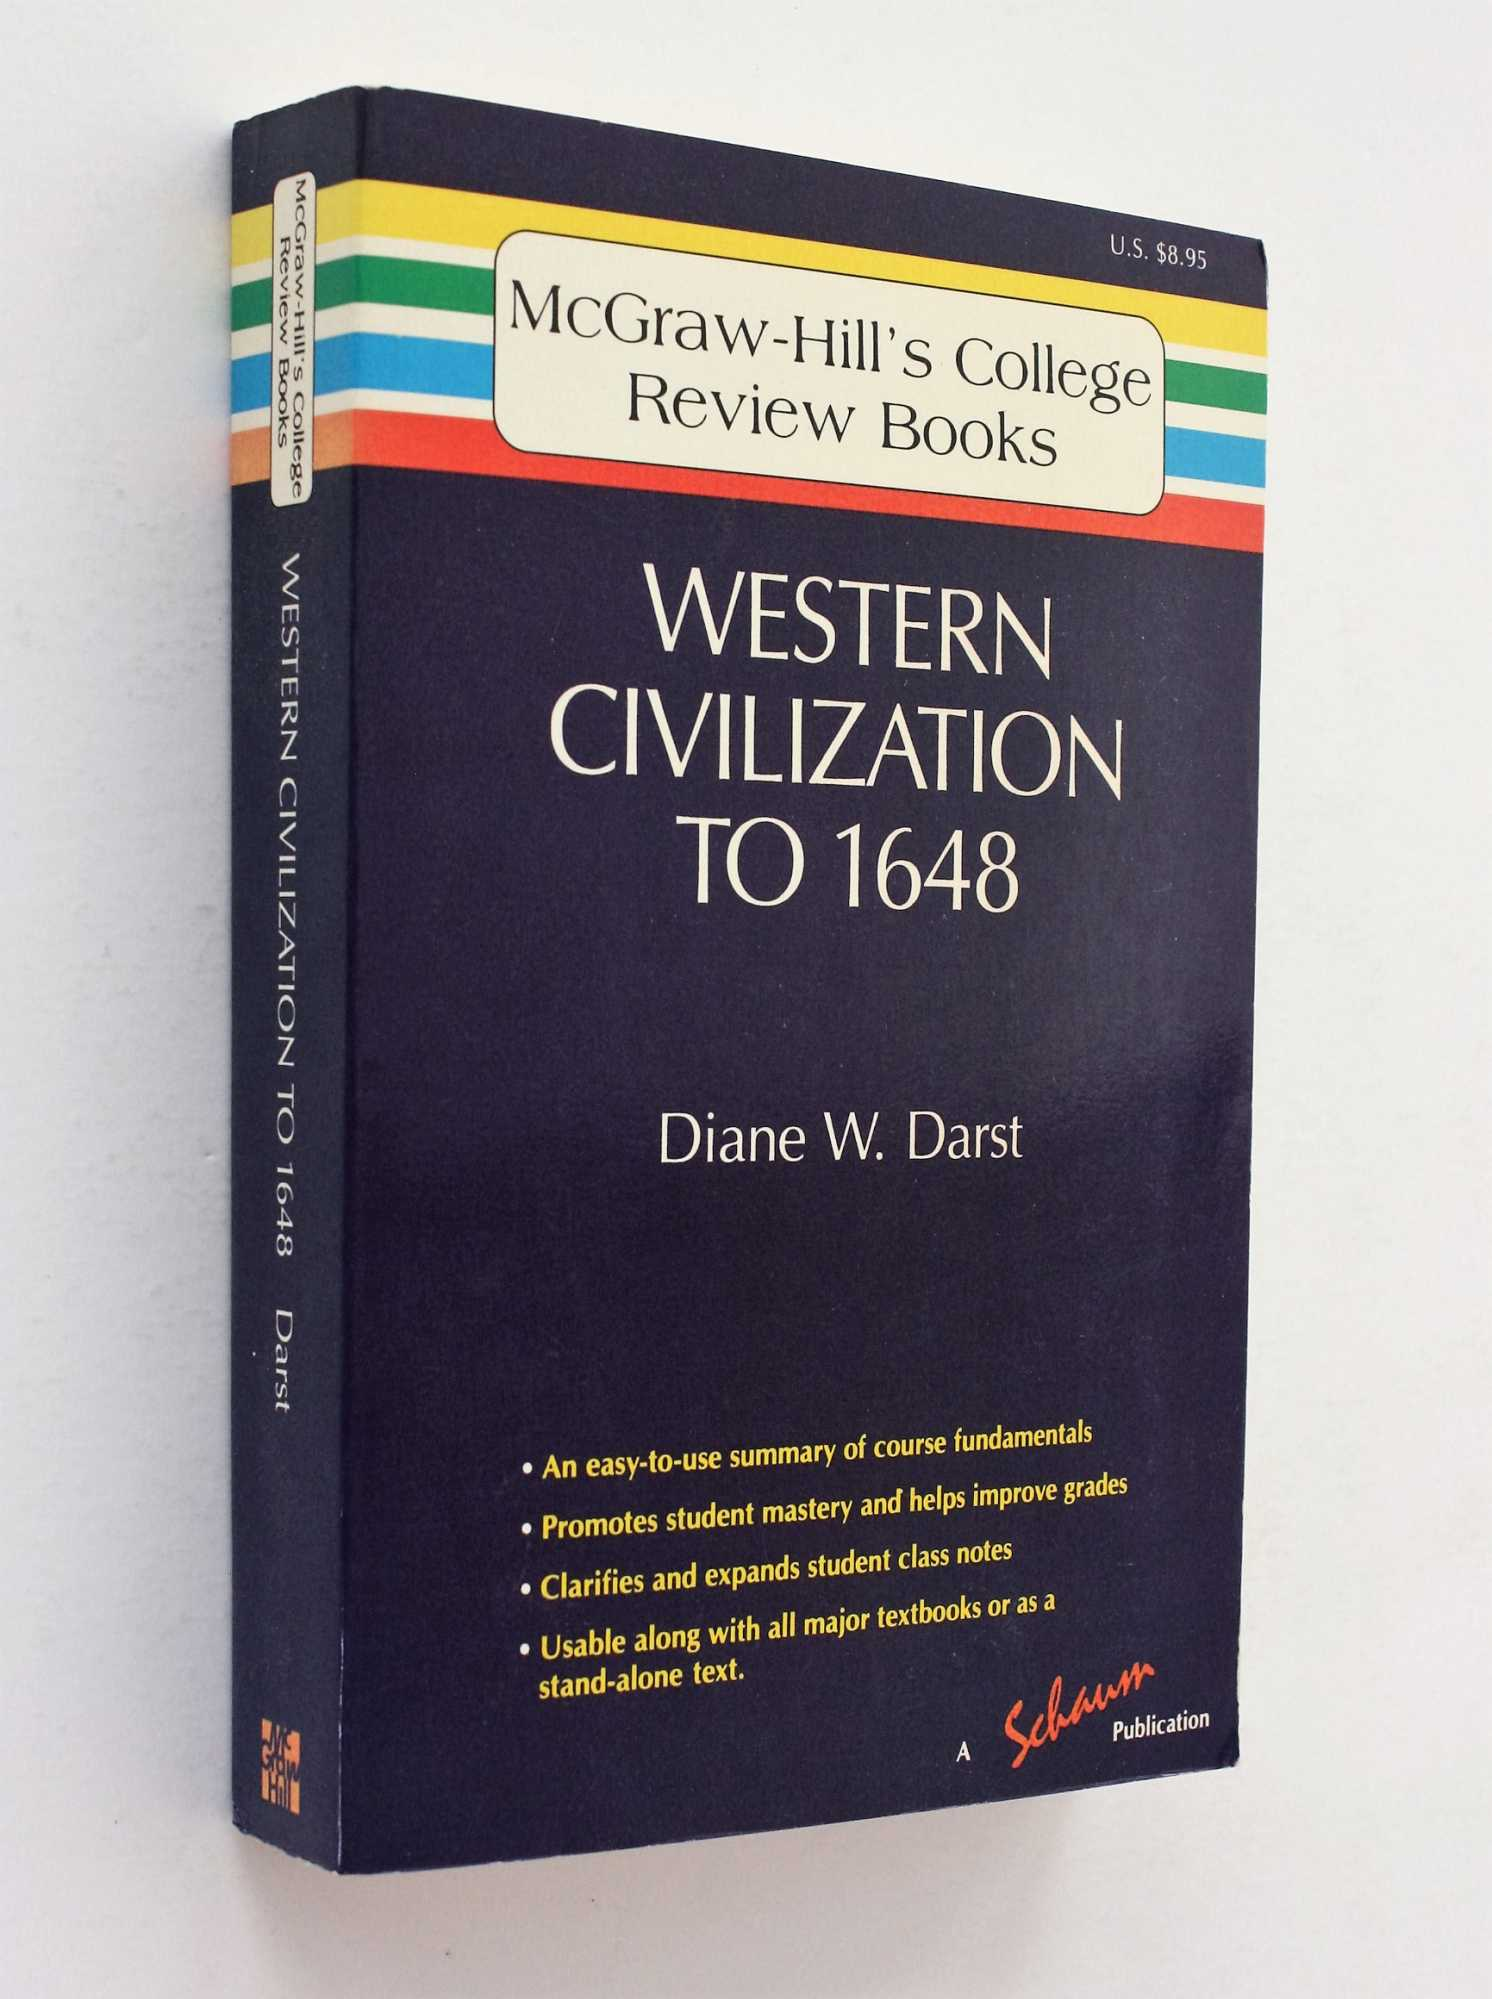 Western Civilization to 1648, Darst, Ph.D., Diane W.